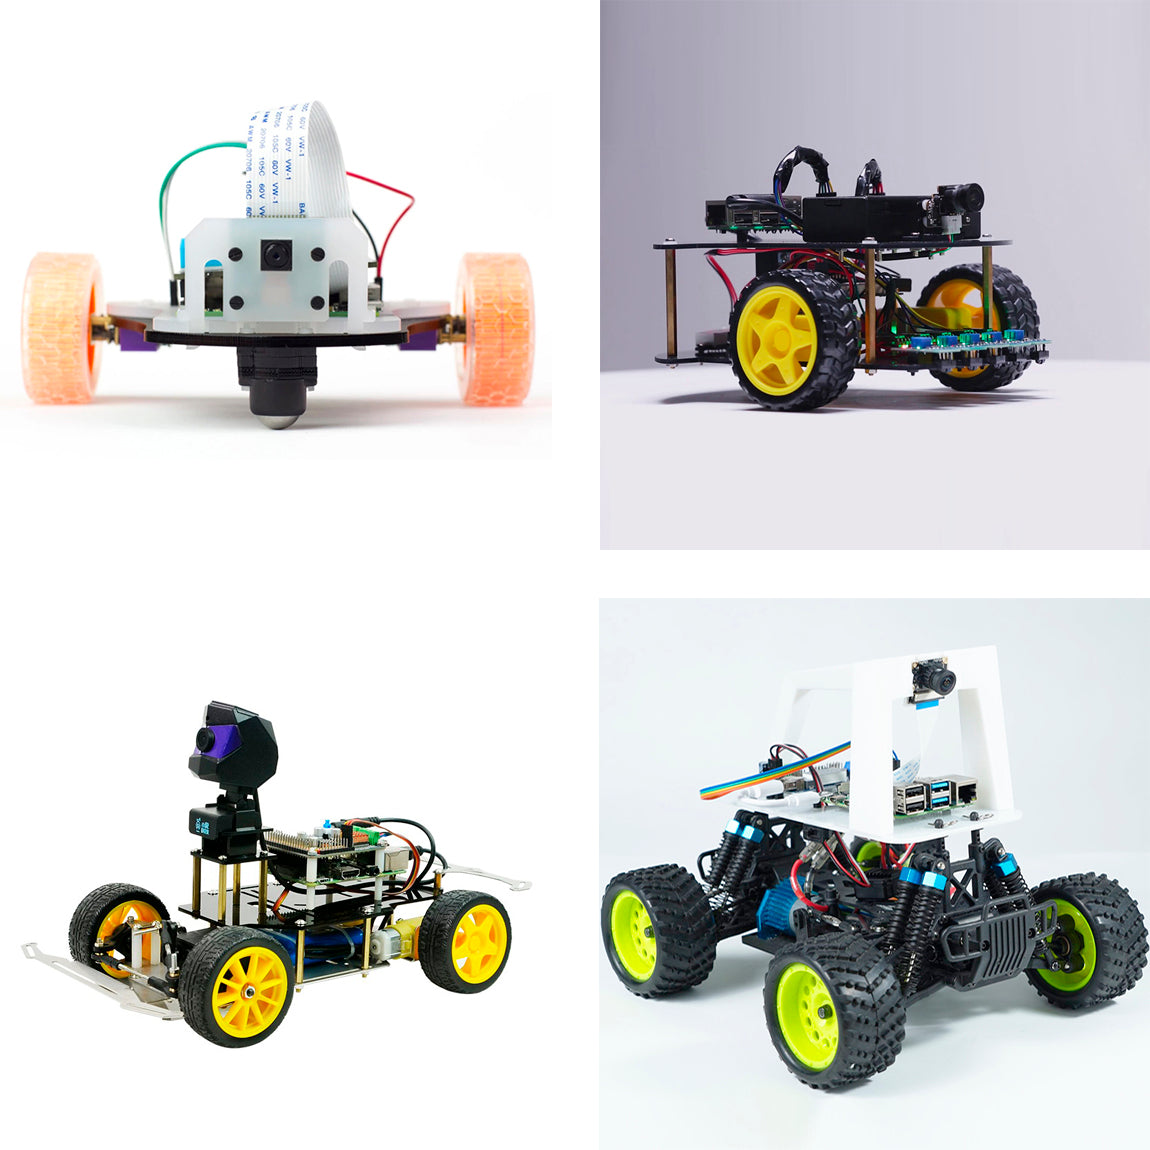 ACROBOTIC Robocar comes in 4 different models